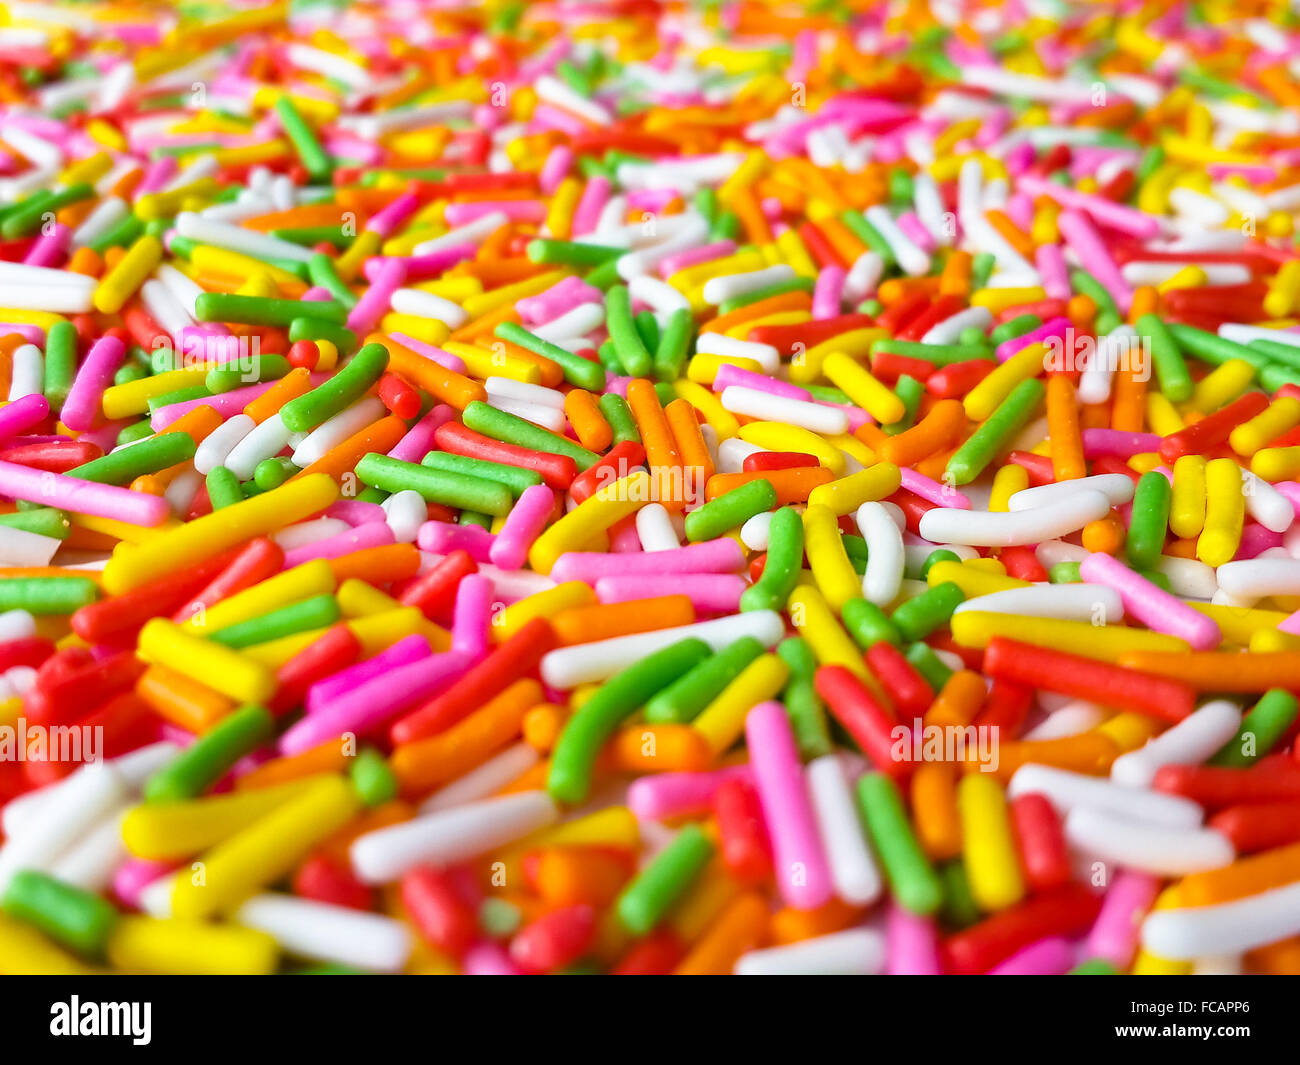 Colorful sprinkle background, Narrow depth of field - Stock Image